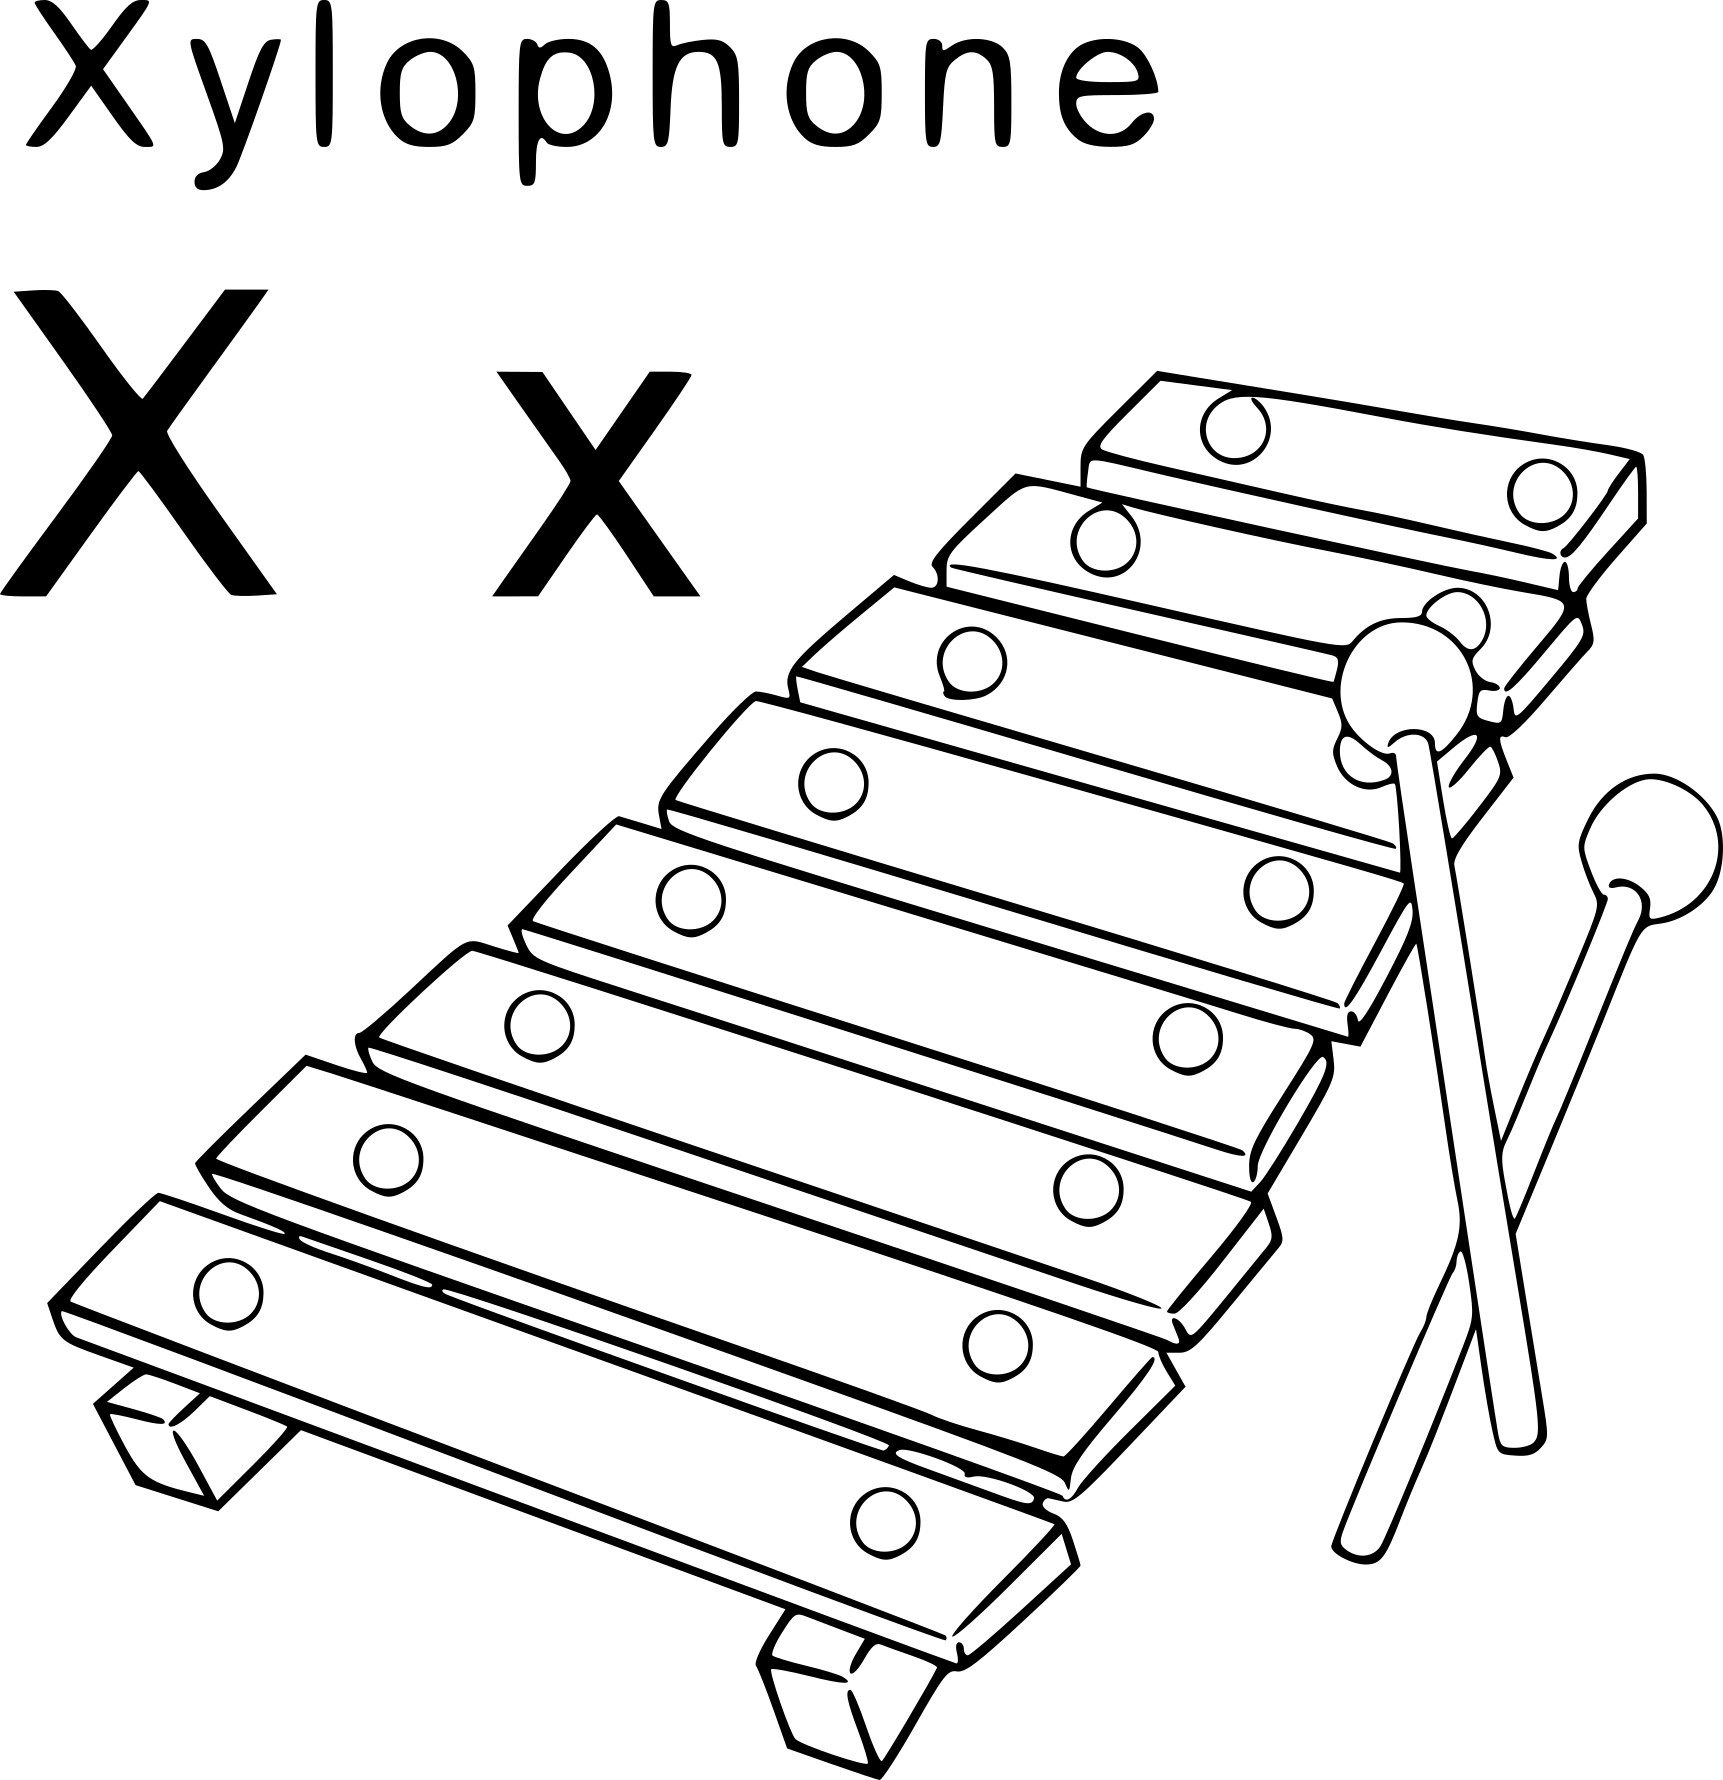 Coloriage X comme Xylophone